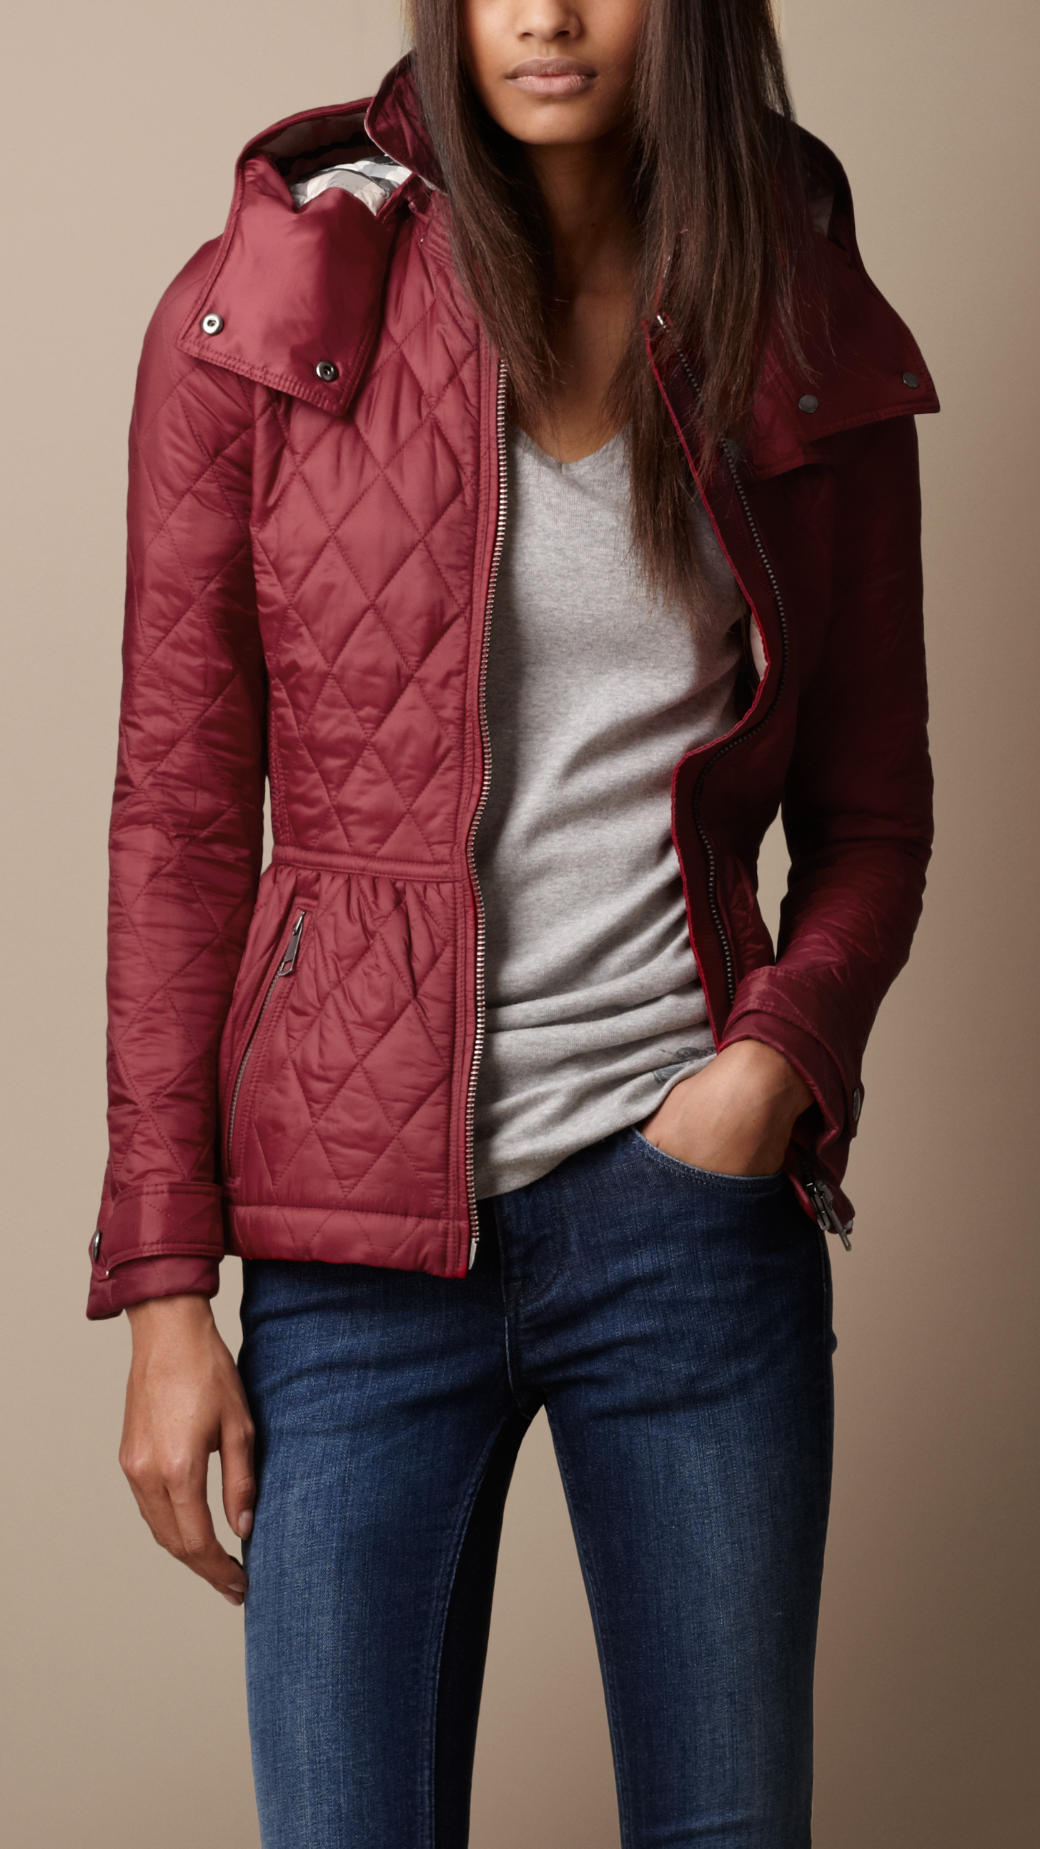 Lyst - Burberry brit Hooded Quilted Jacket in Red : short quilted jacket with hood - Adamdwight.com